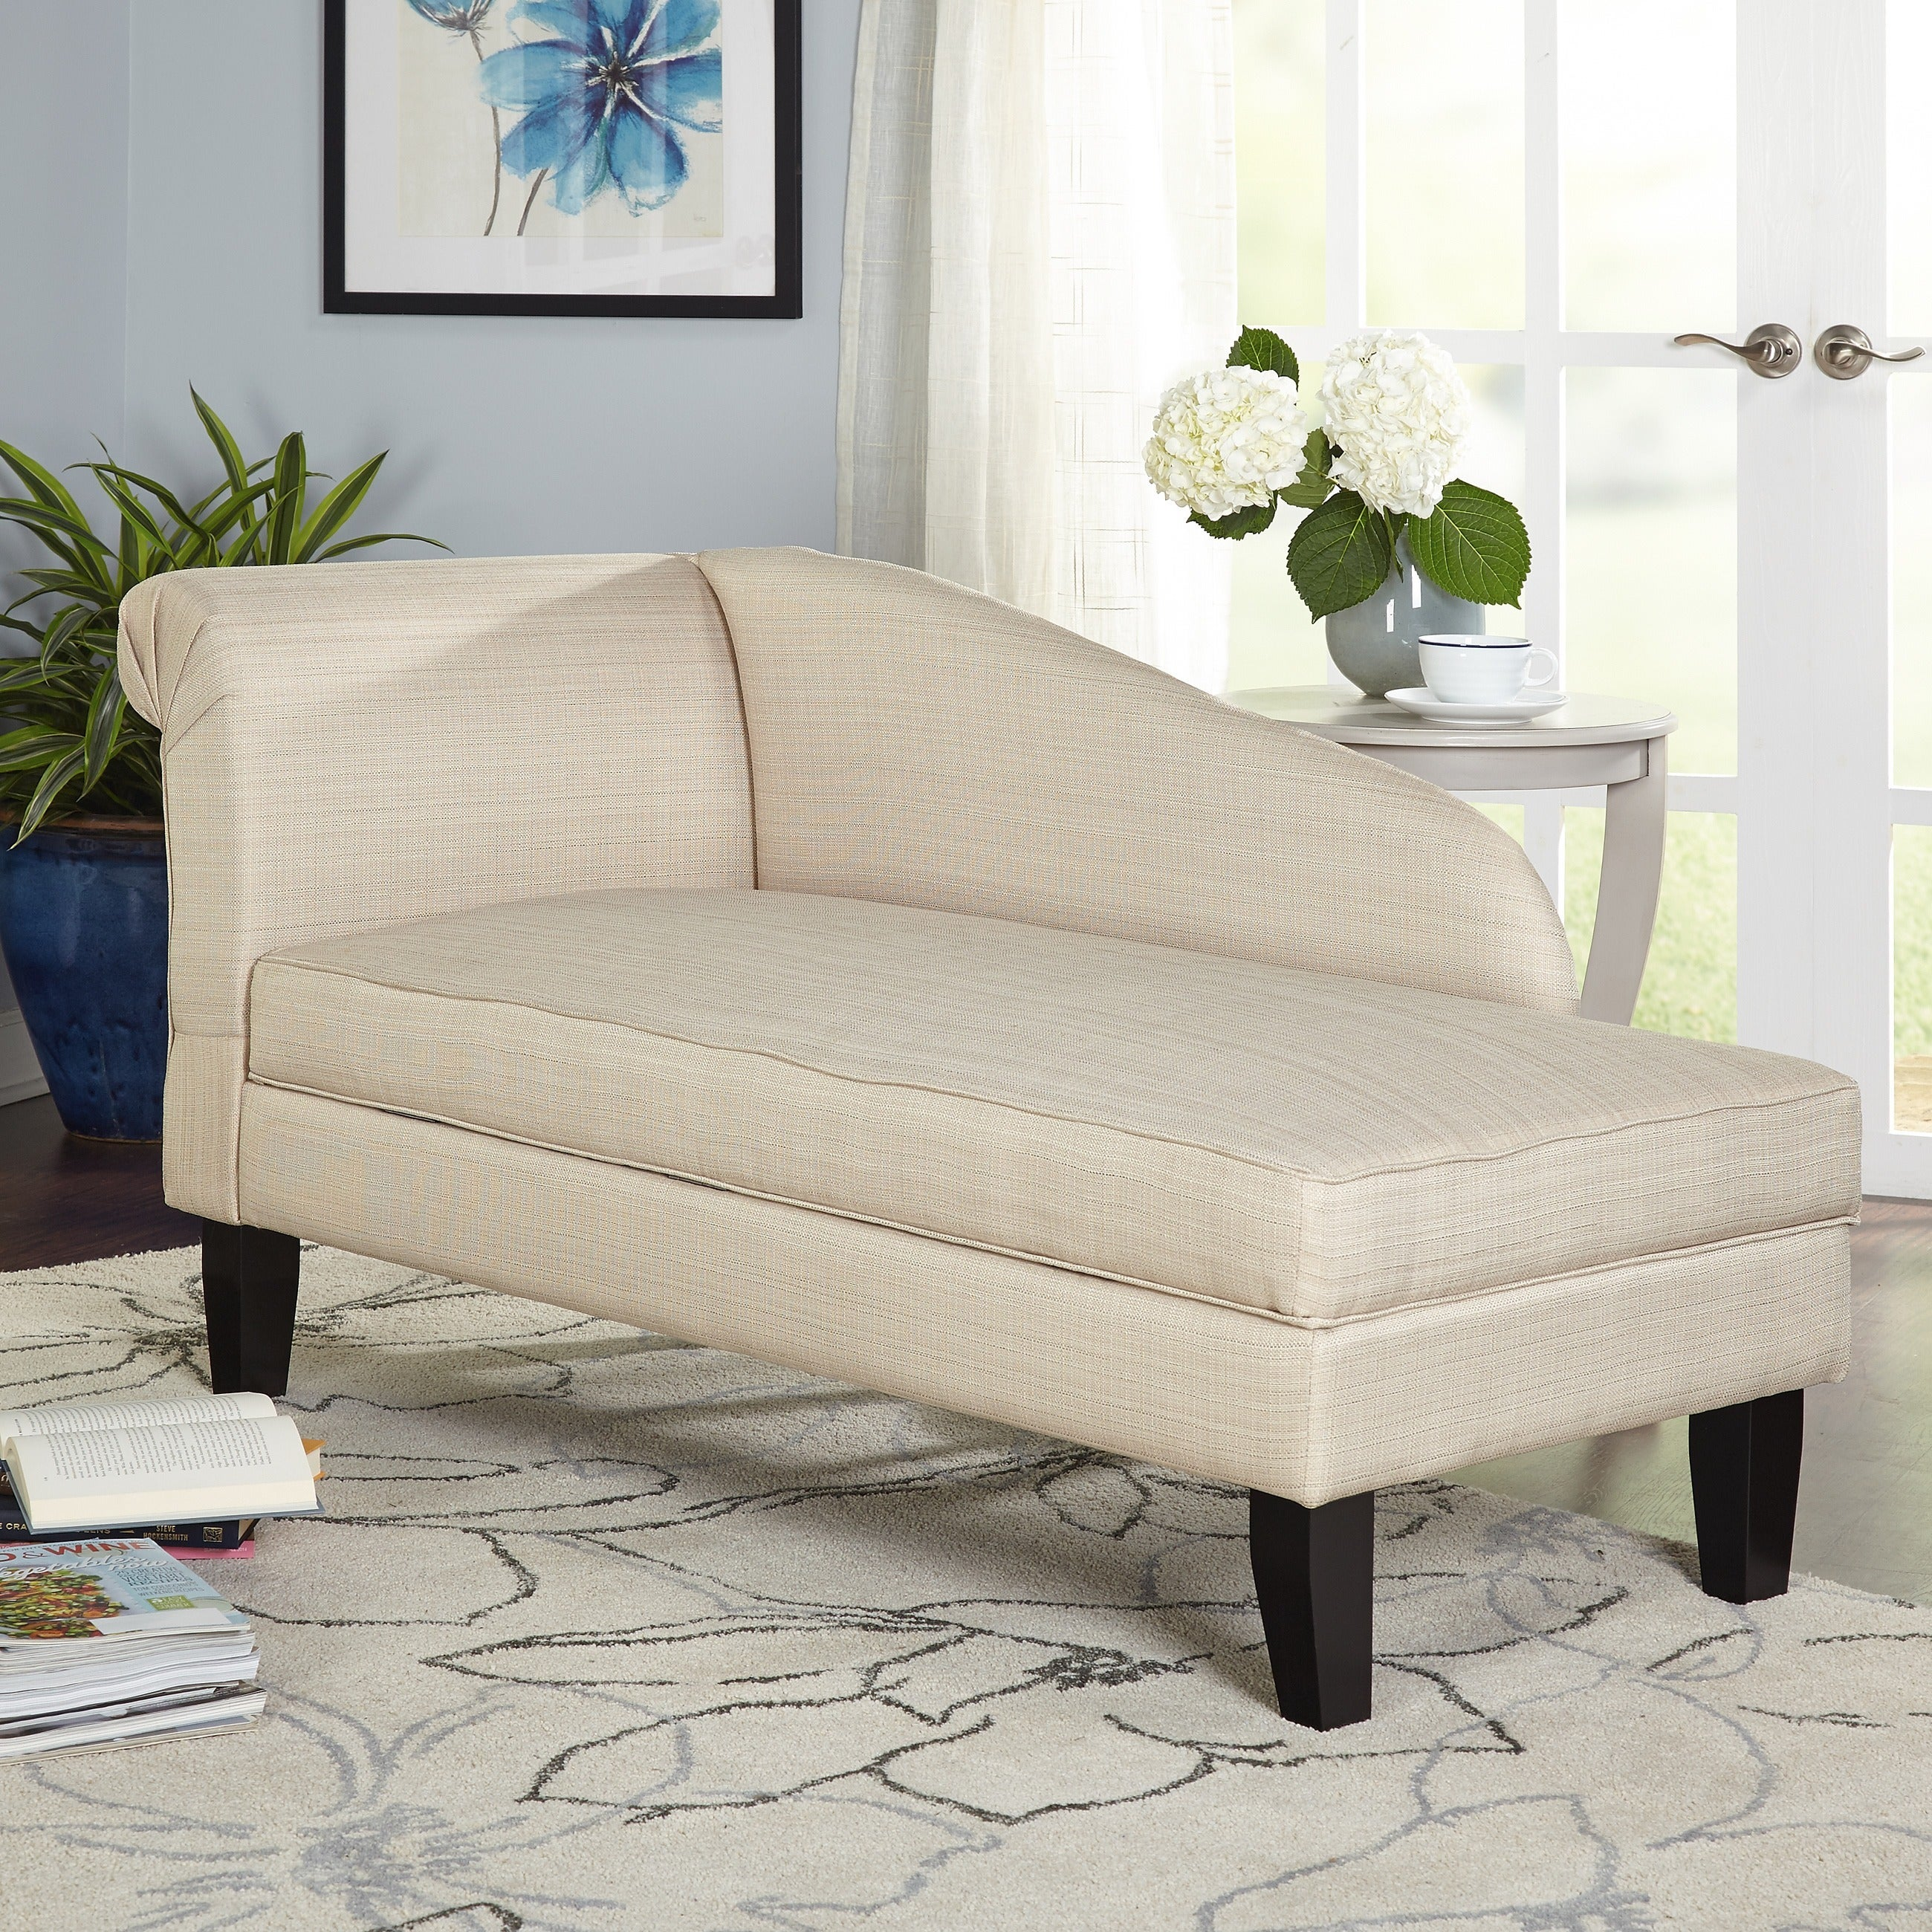 Simple Living Chaise Lounge With Storage Compartment (2 Options Available)